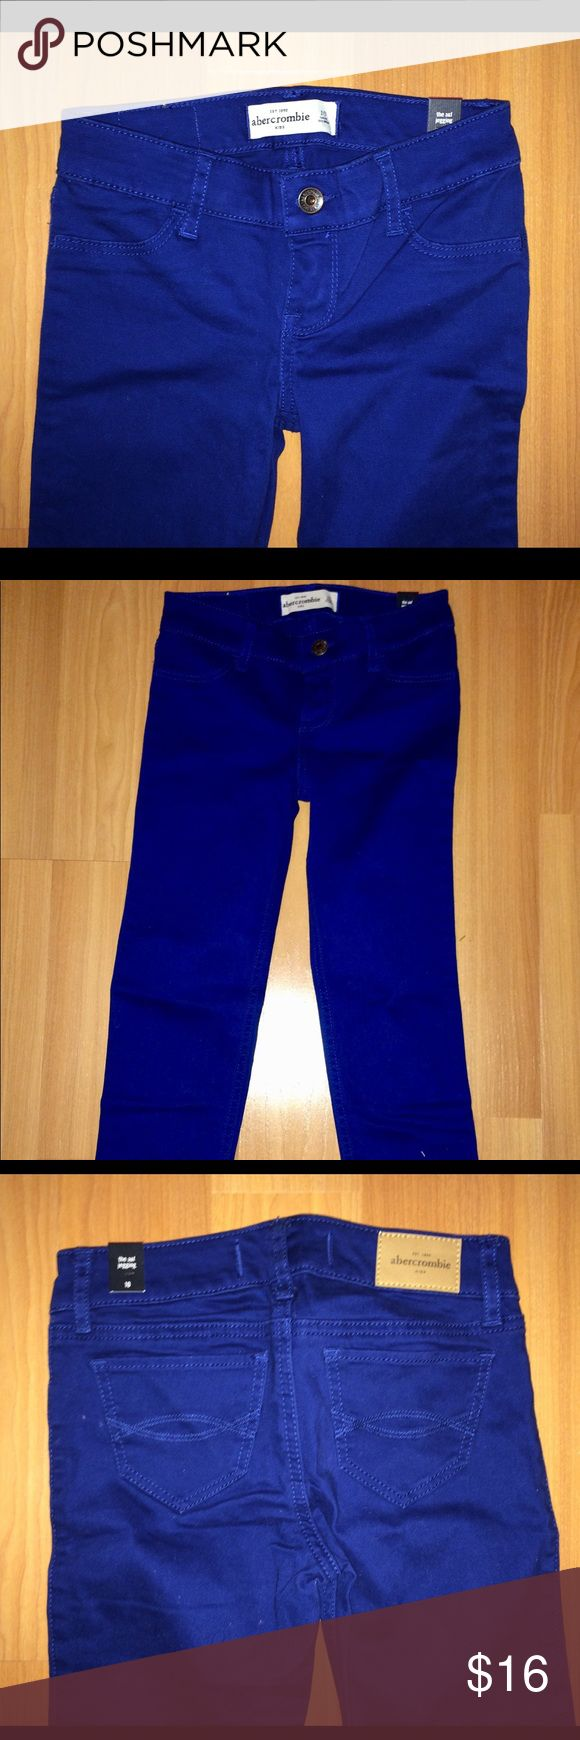 Blue Abercrombie Kids Denim Jeans Excellent condition, never worn.   Has A&F tag  on waist band. abercrombie kids Bottoms Jeans